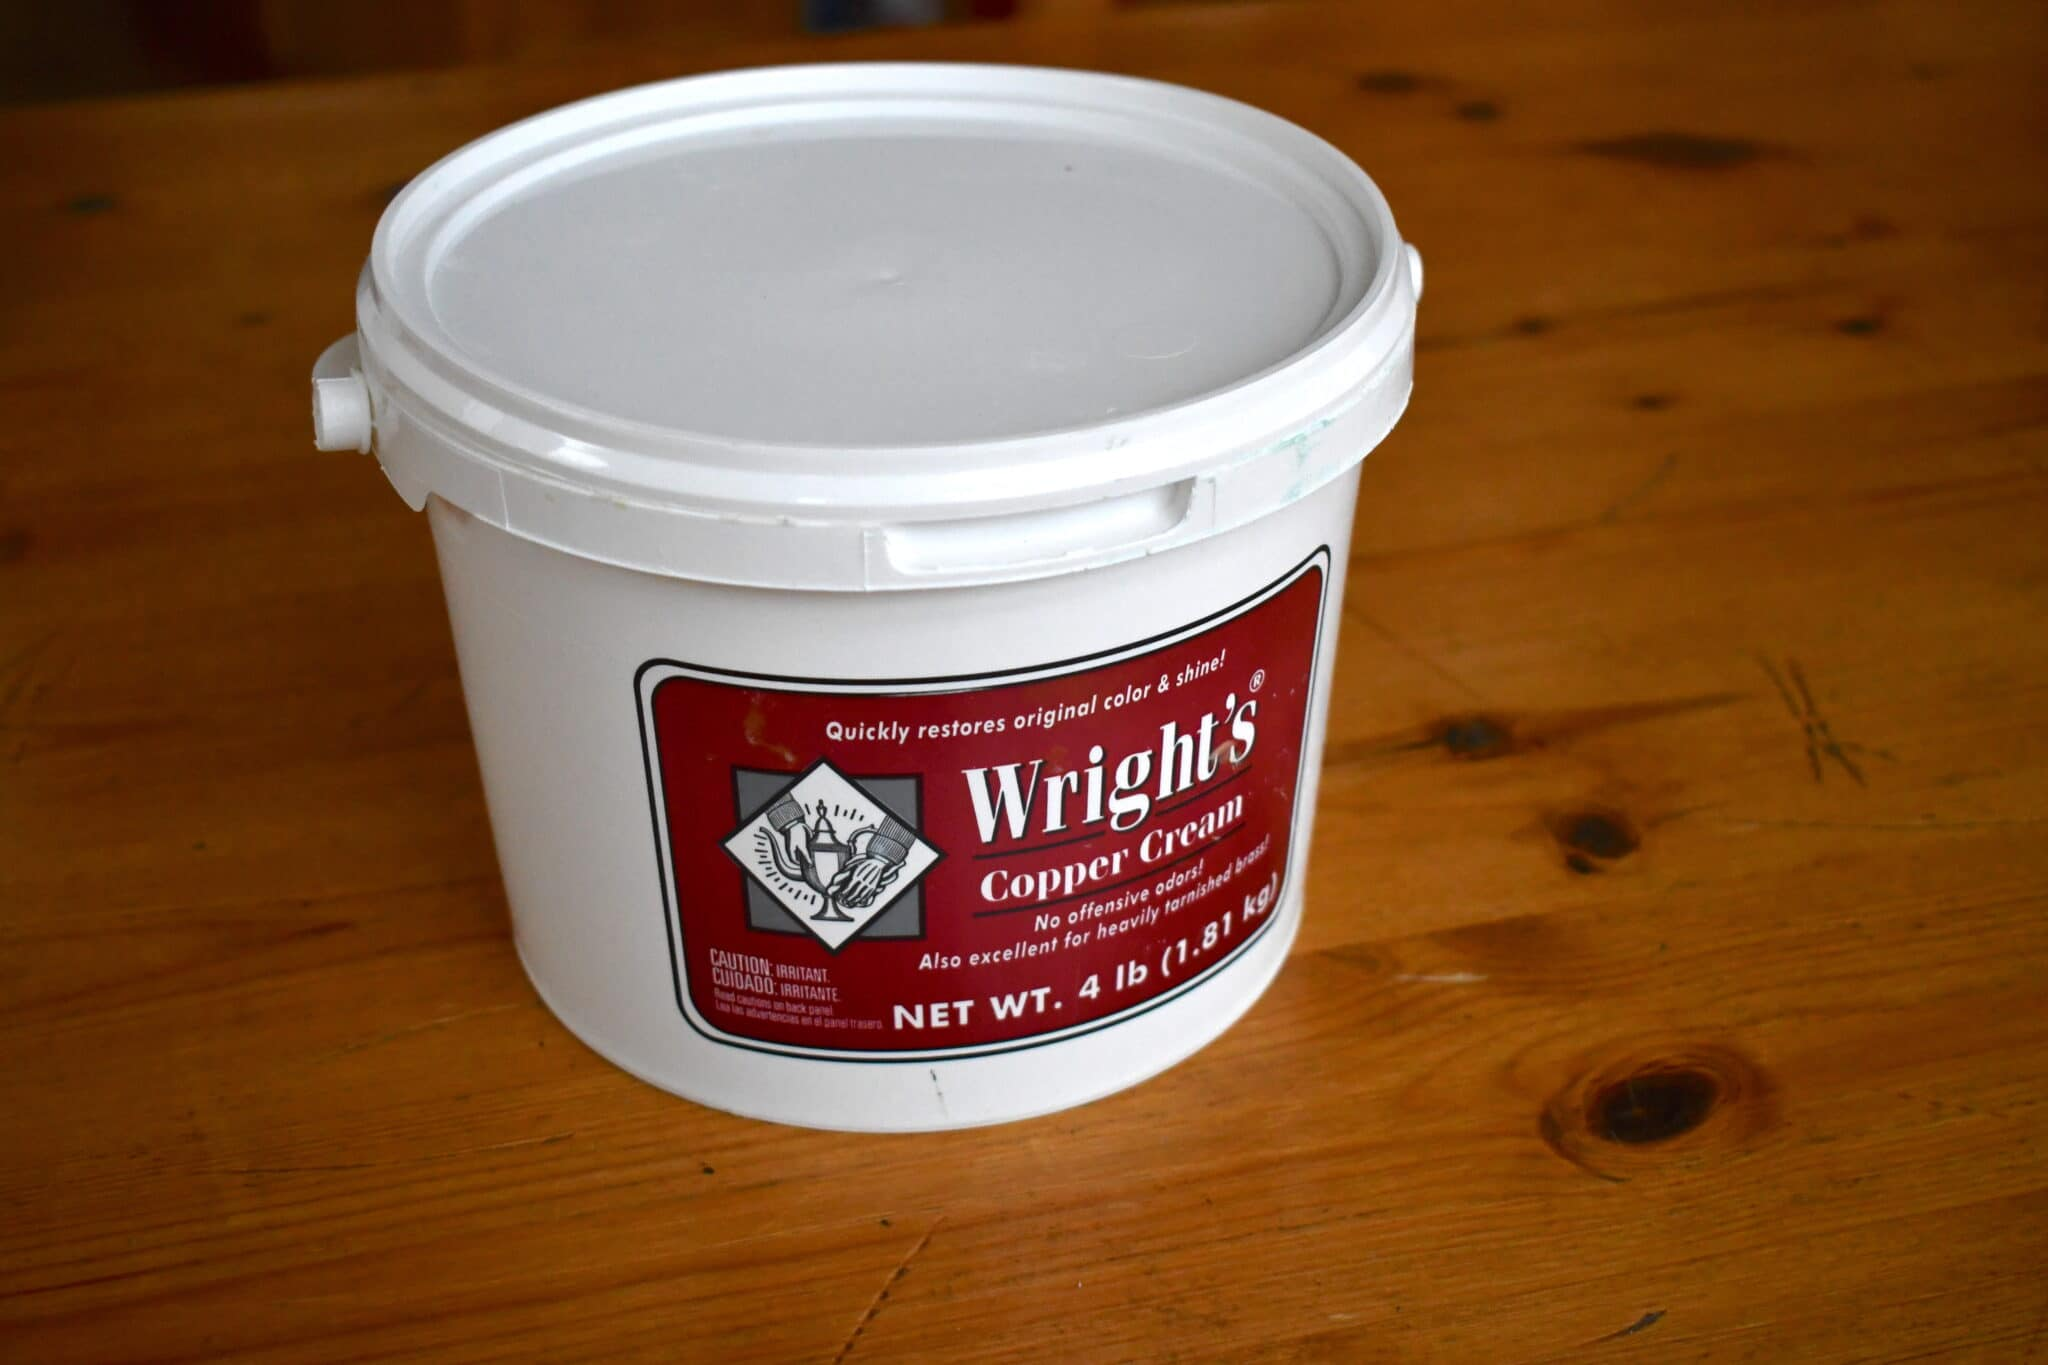 Stuff I use: Wright's copper cleaner